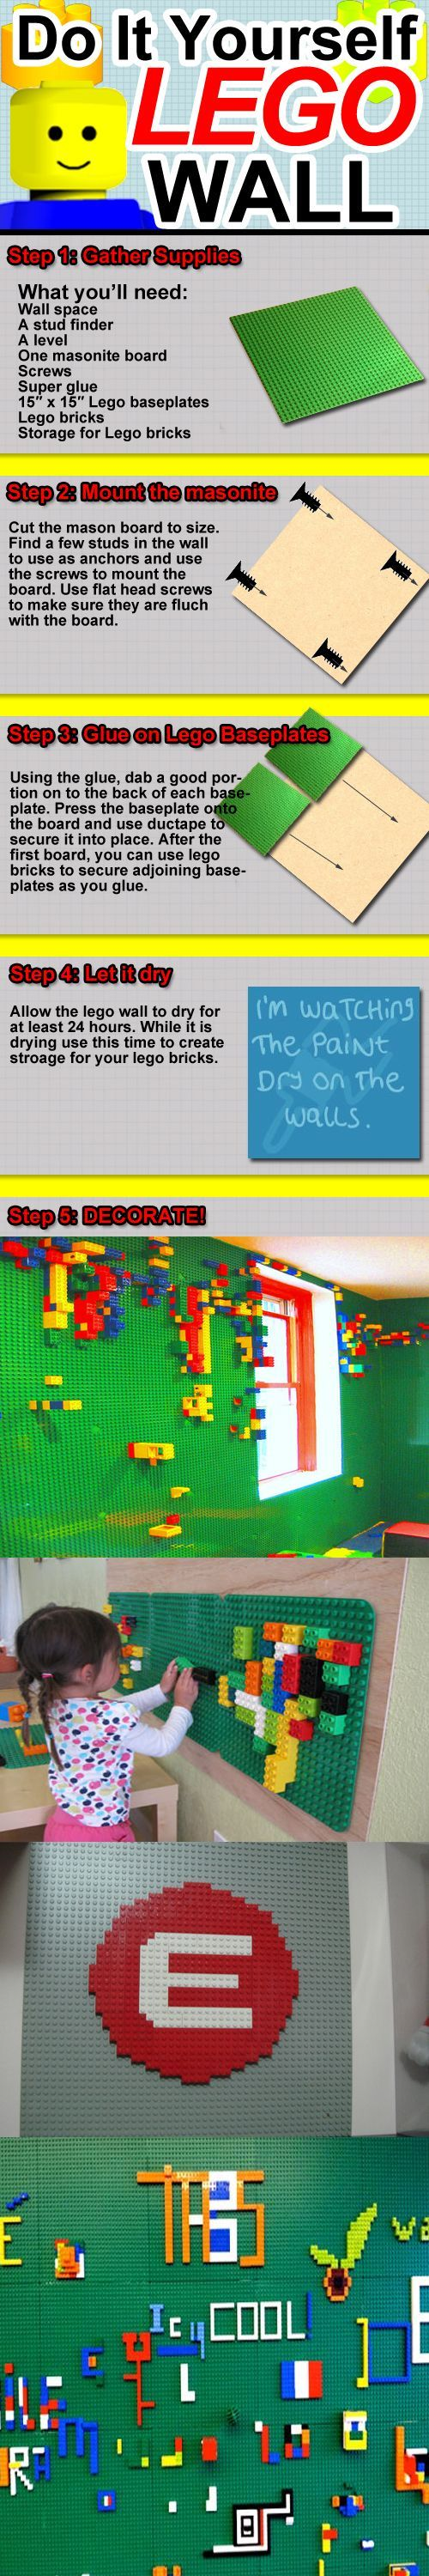 can't do this to our walls because we rent, but i think i may try it on a bulletin board or two and hang those. owen would love it!!: Idea, Play Rooms, Diy Lego, Kids Room, Playroom, Lego Wall, Lego Room, Boy, Legowall